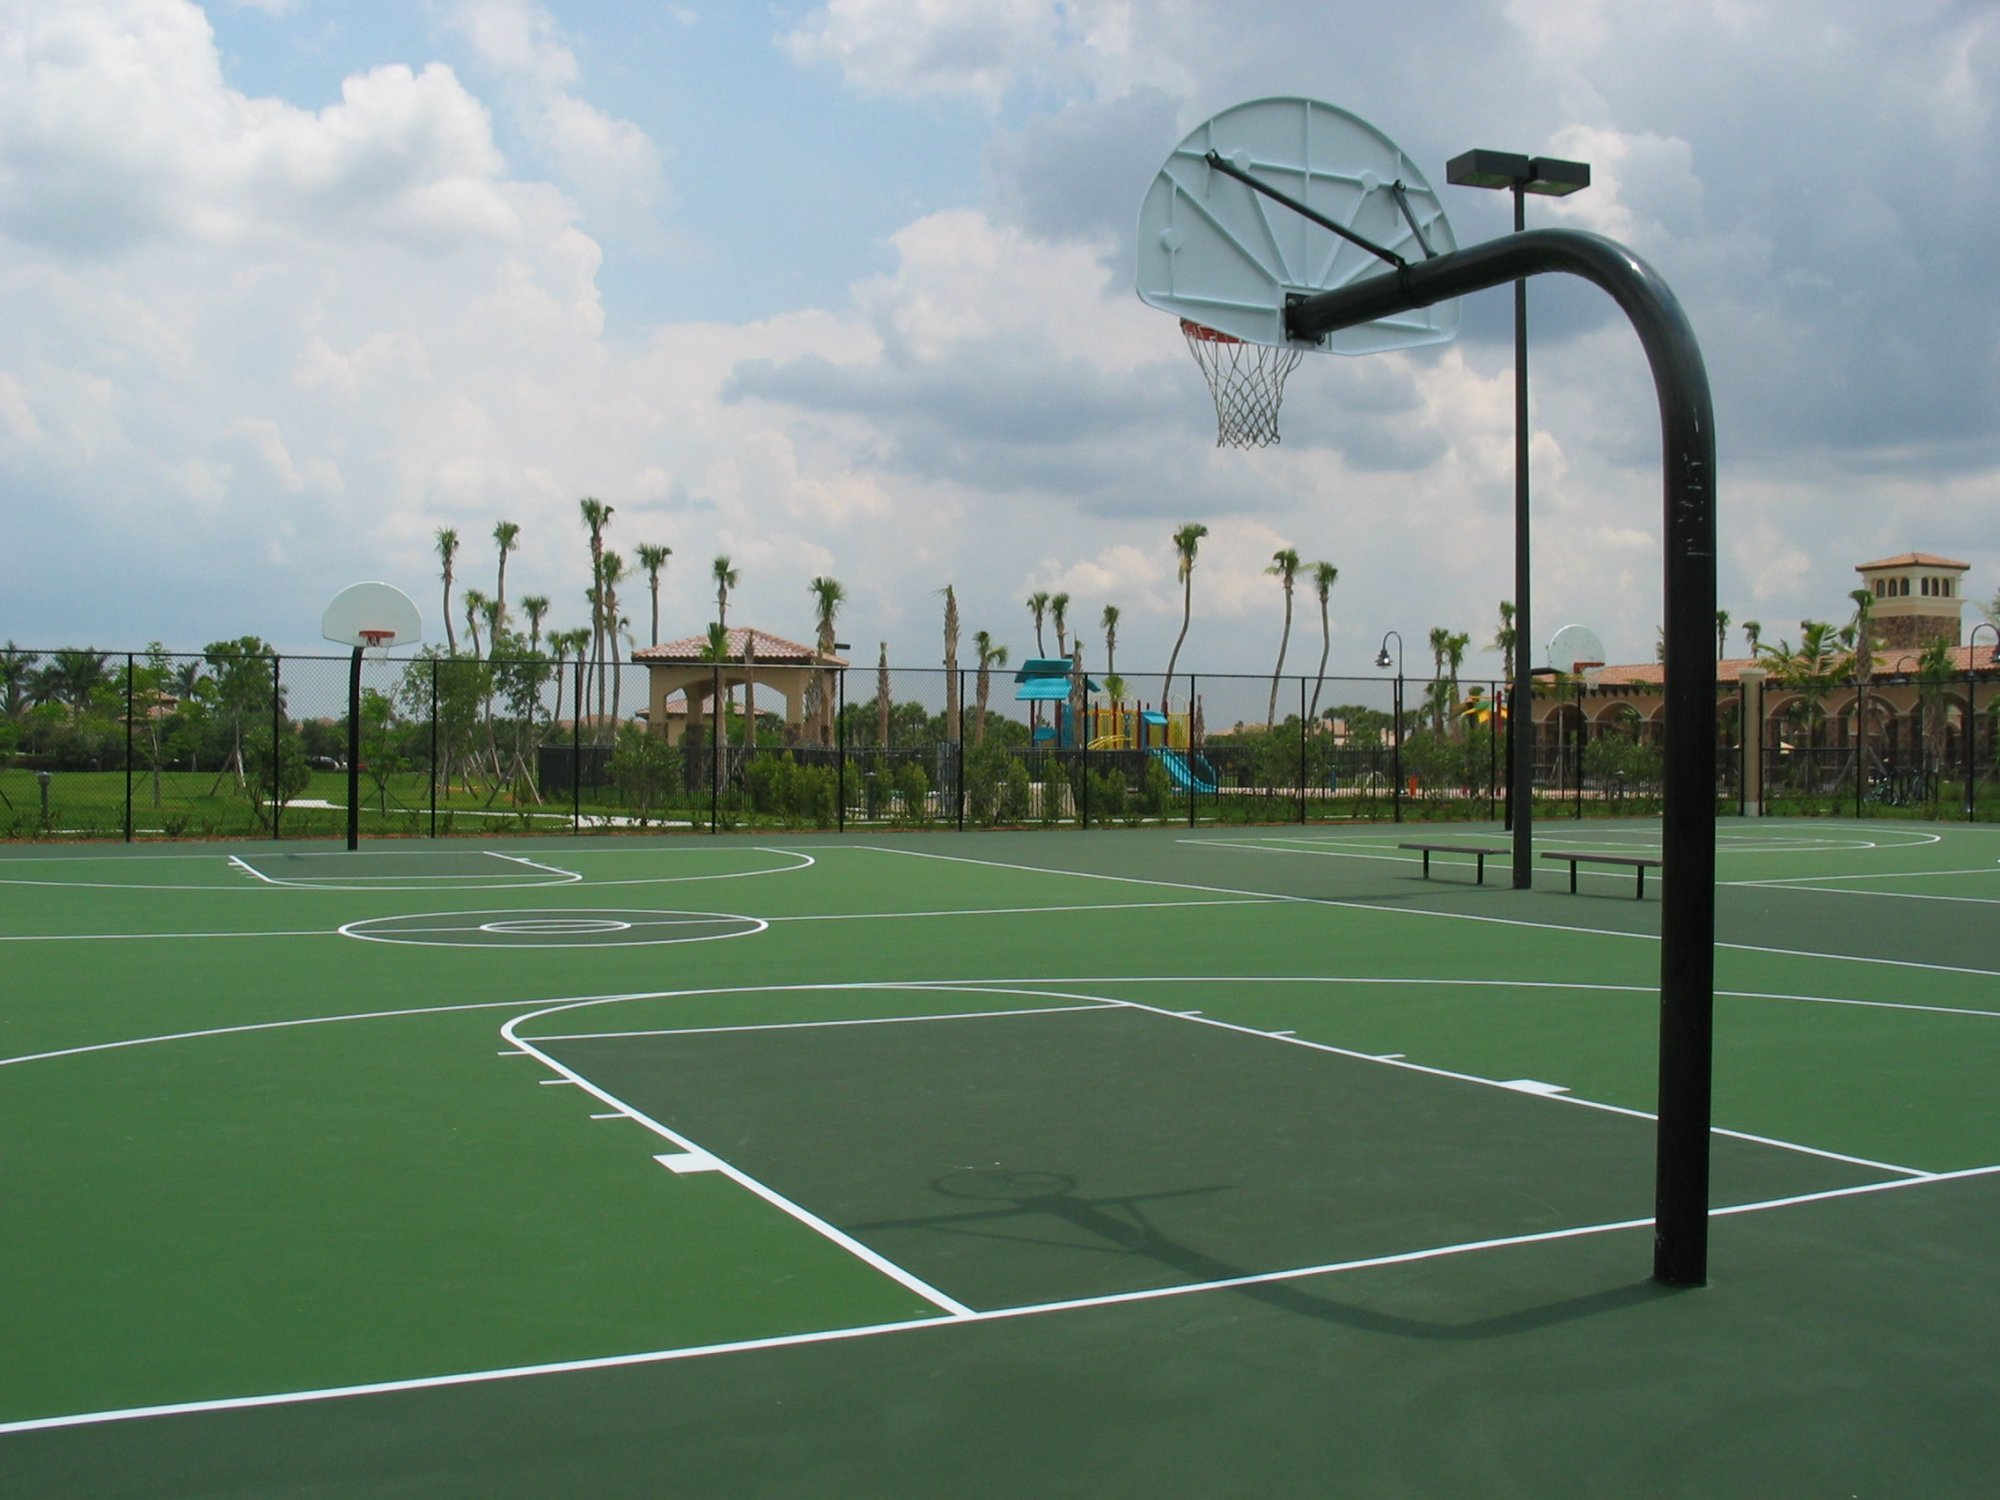 Heron Bay Basket Ball Courts